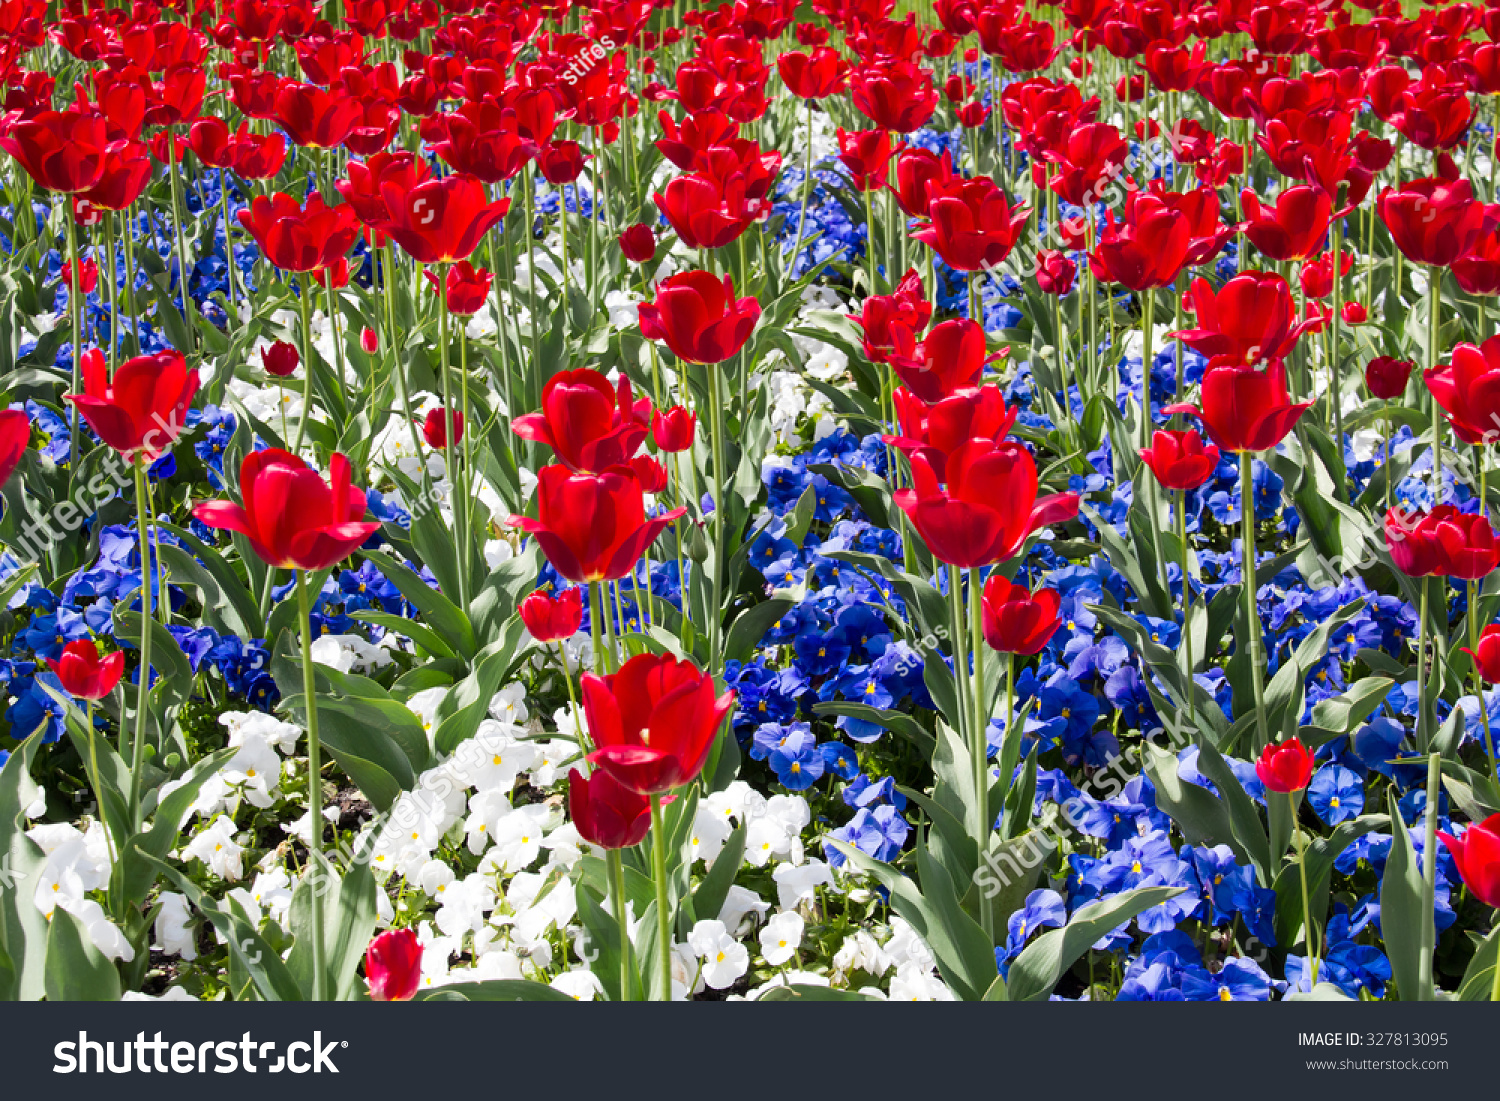 Red white blue flowers stock photo 327813095 shutterstock red white and blue flowers izmirmasajfo Gallery